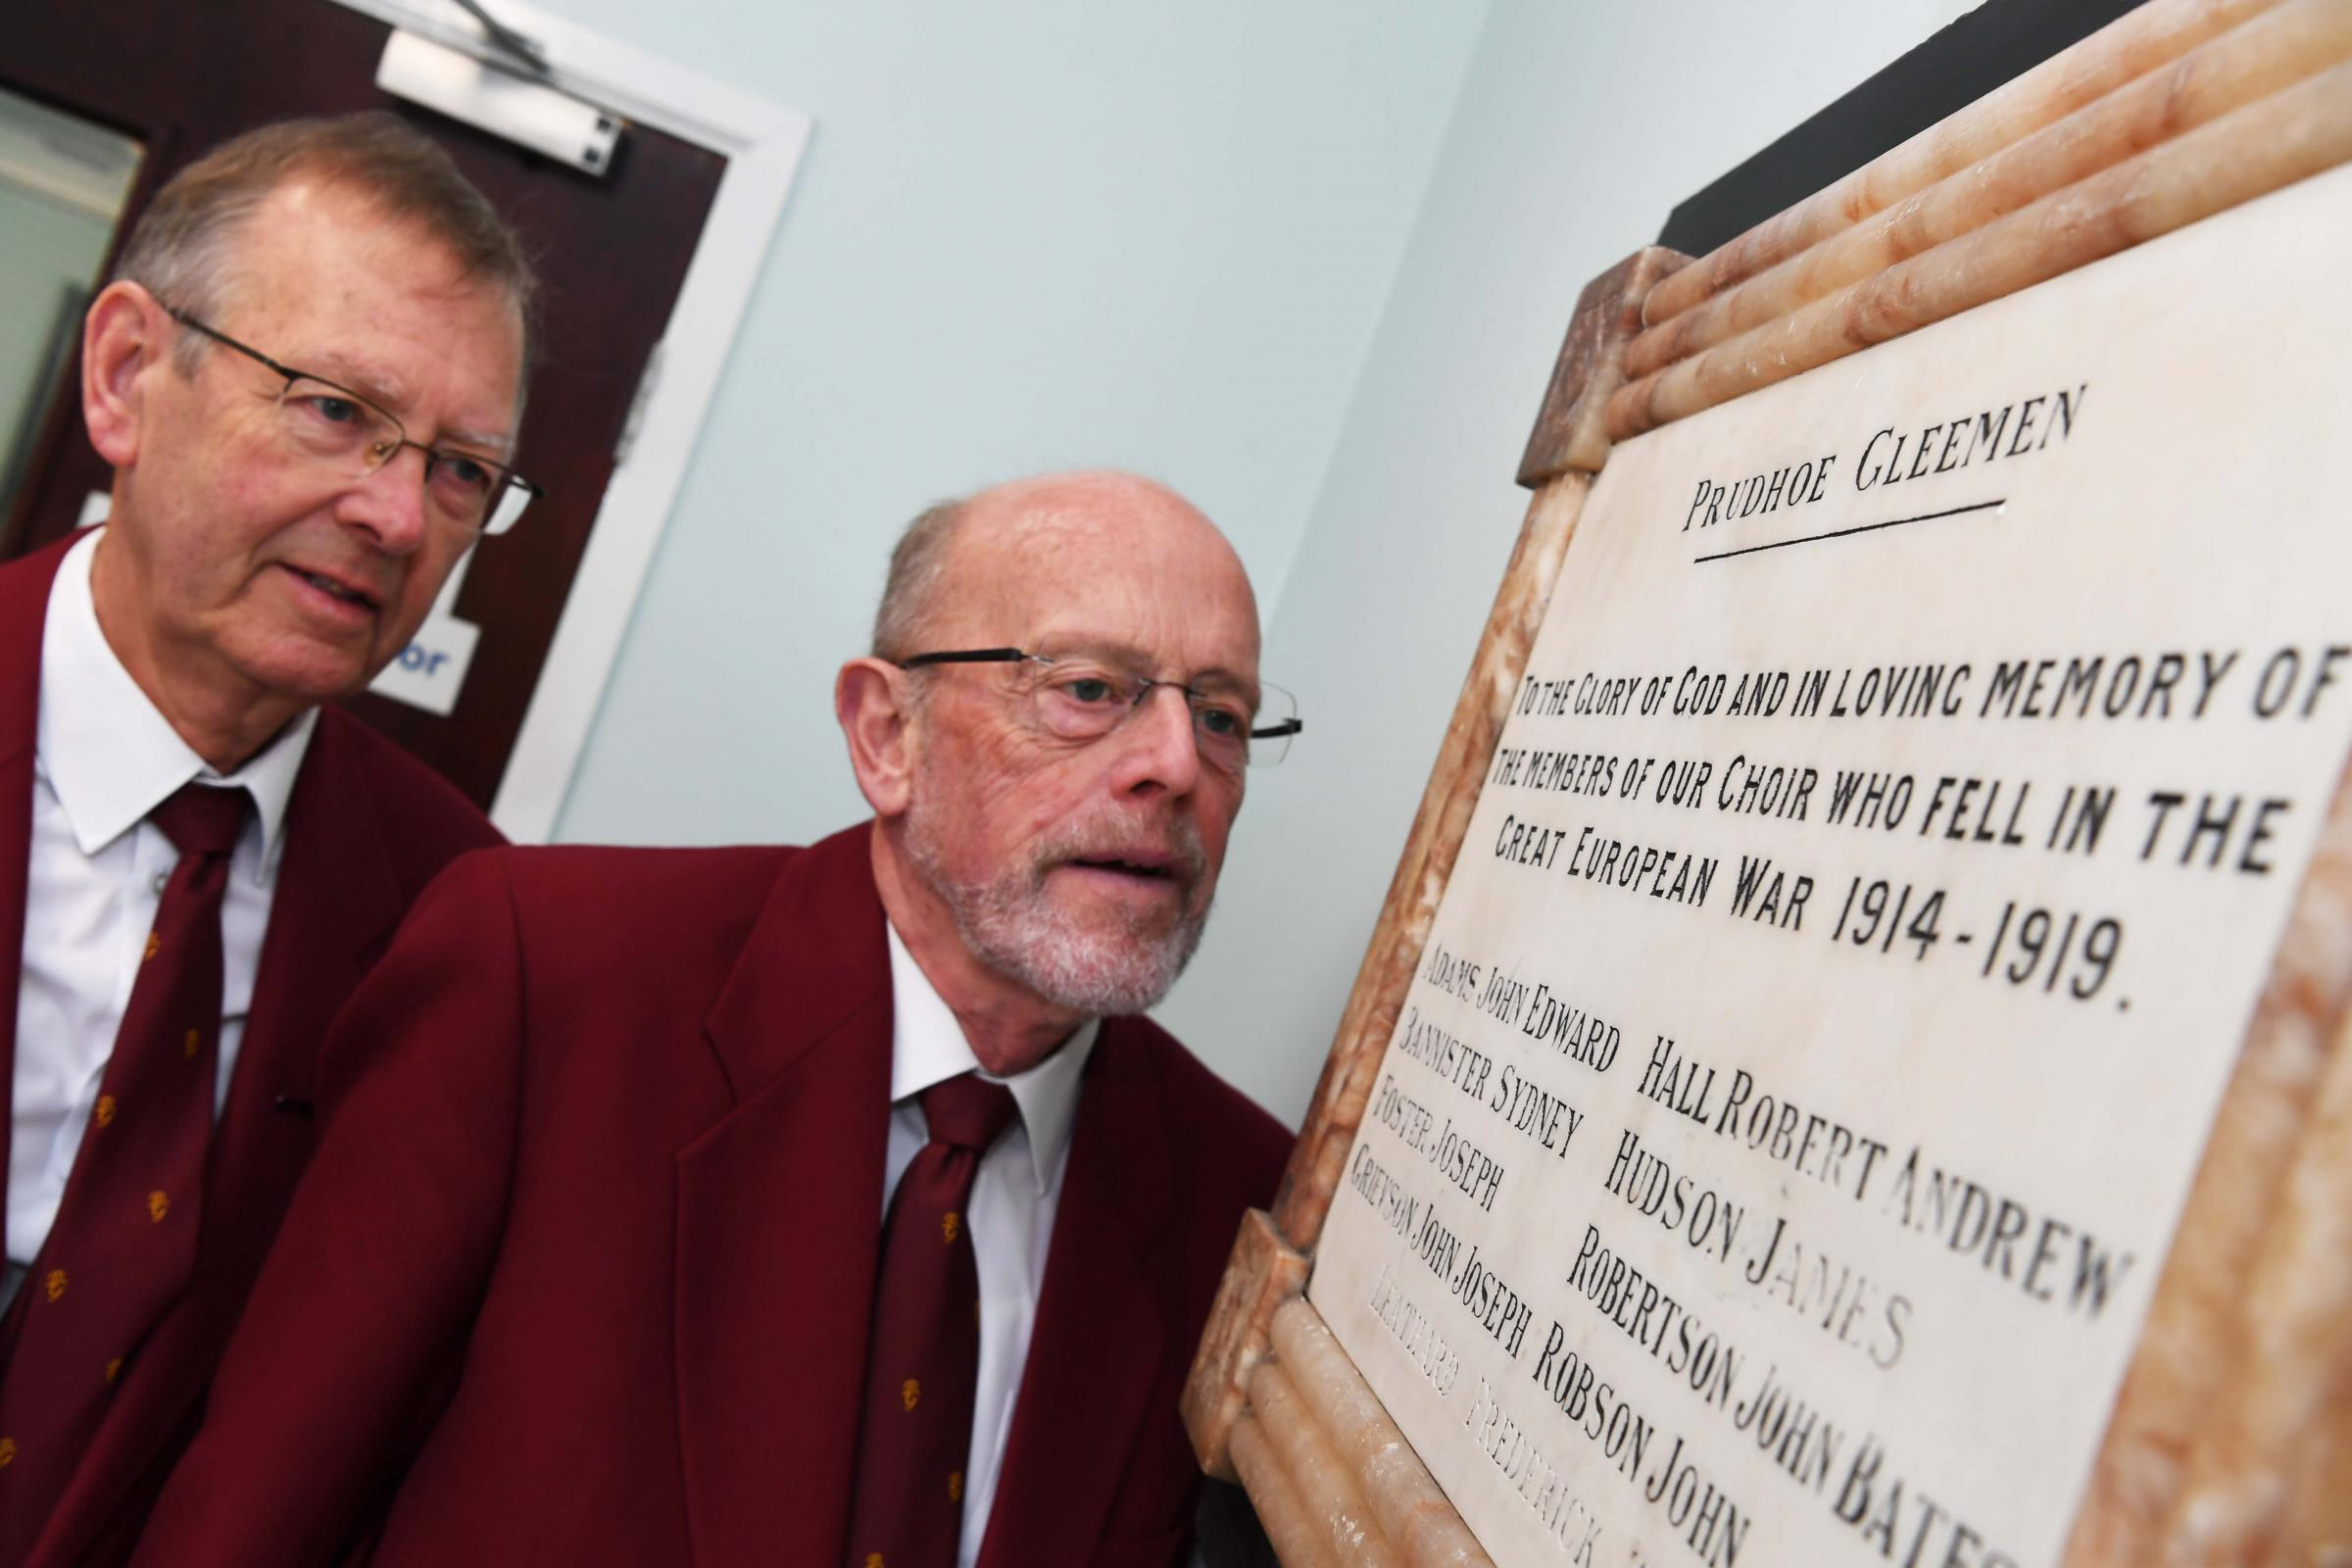 Prudhoe Gleemen Neville Fairbairn and John Clark next to the memorial plaque in Prudhoe Methodist Church.          Photo: HX441854